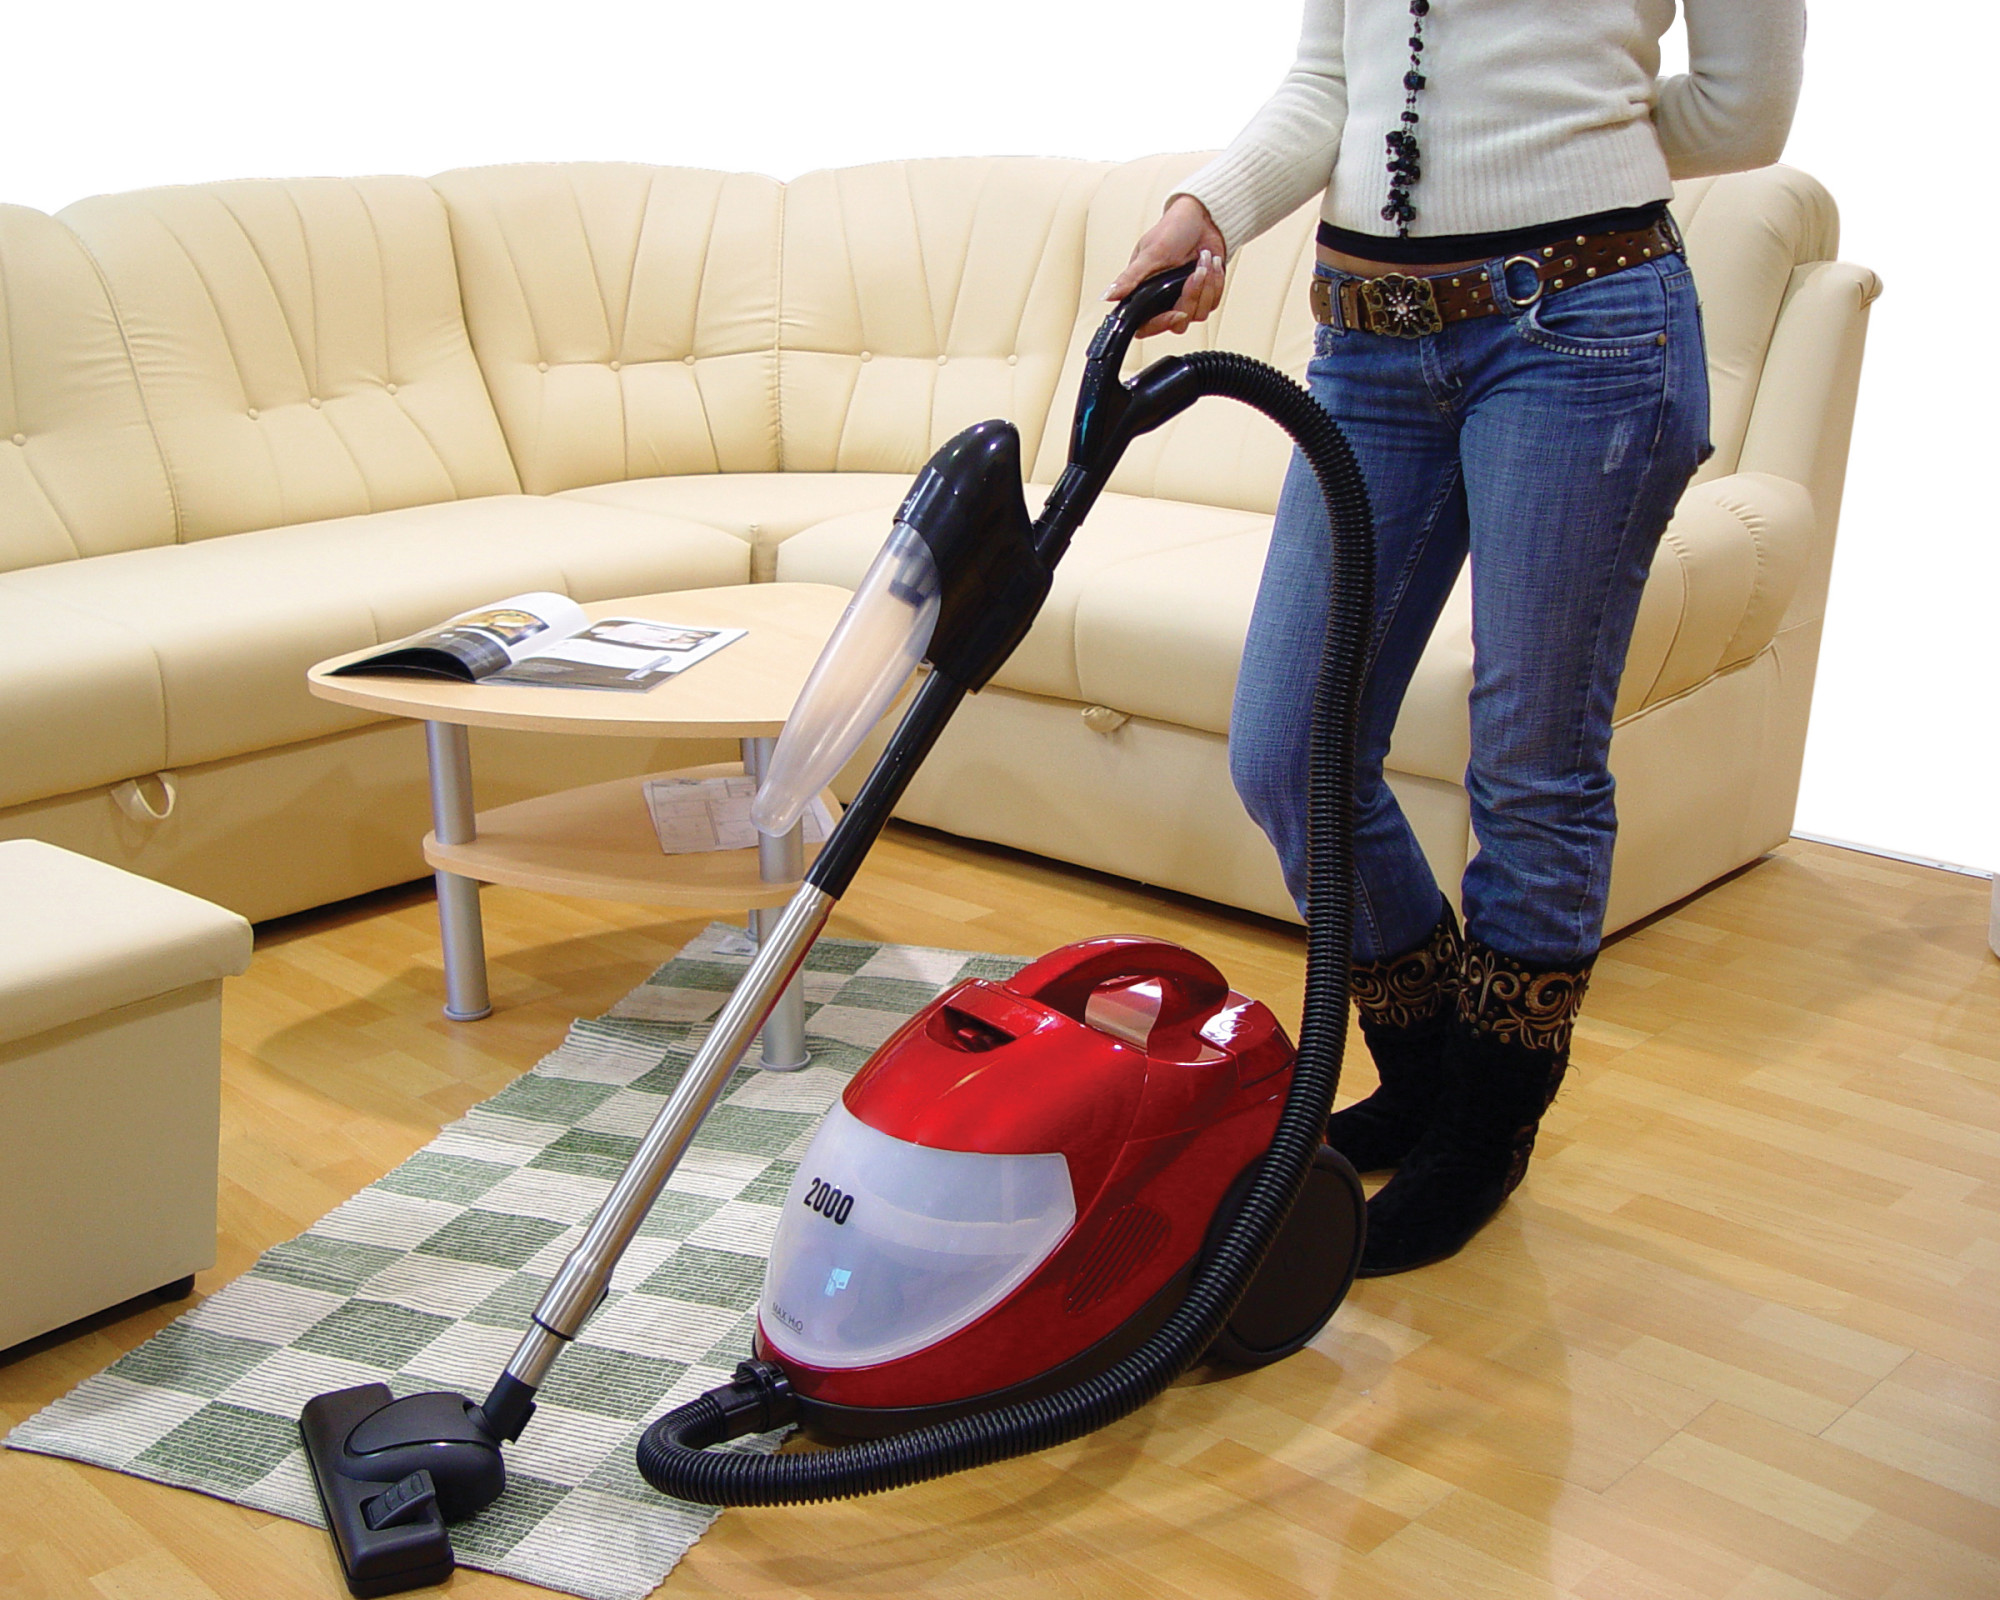 Obtain the detailed information of vacuumpal review source